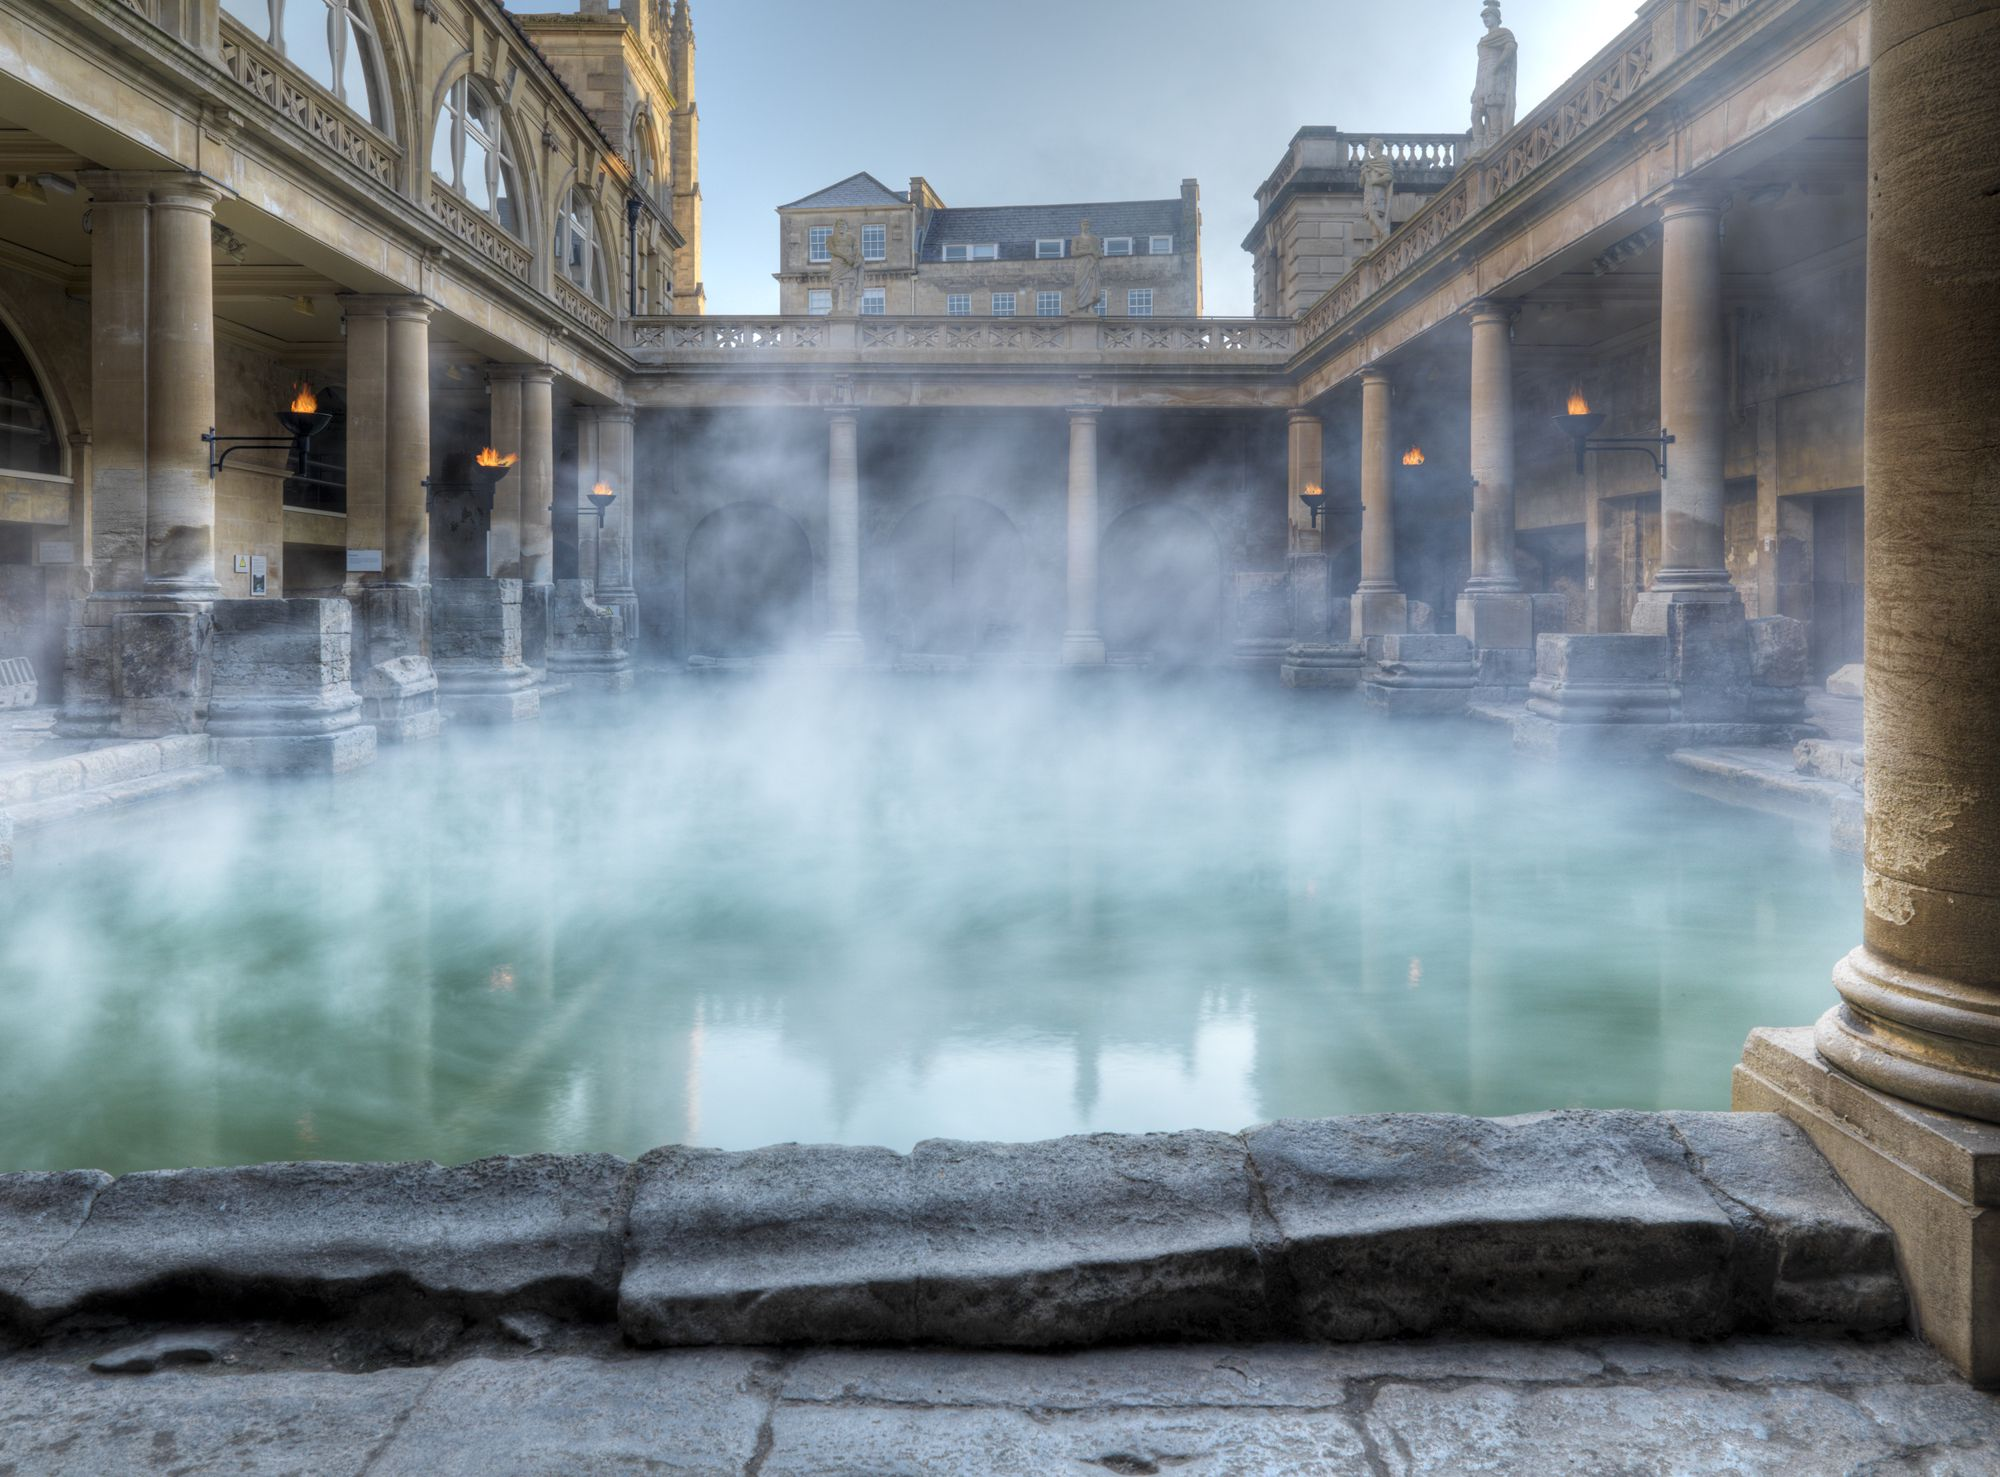 Hotels, B&Bs & Self-Catering in Bath